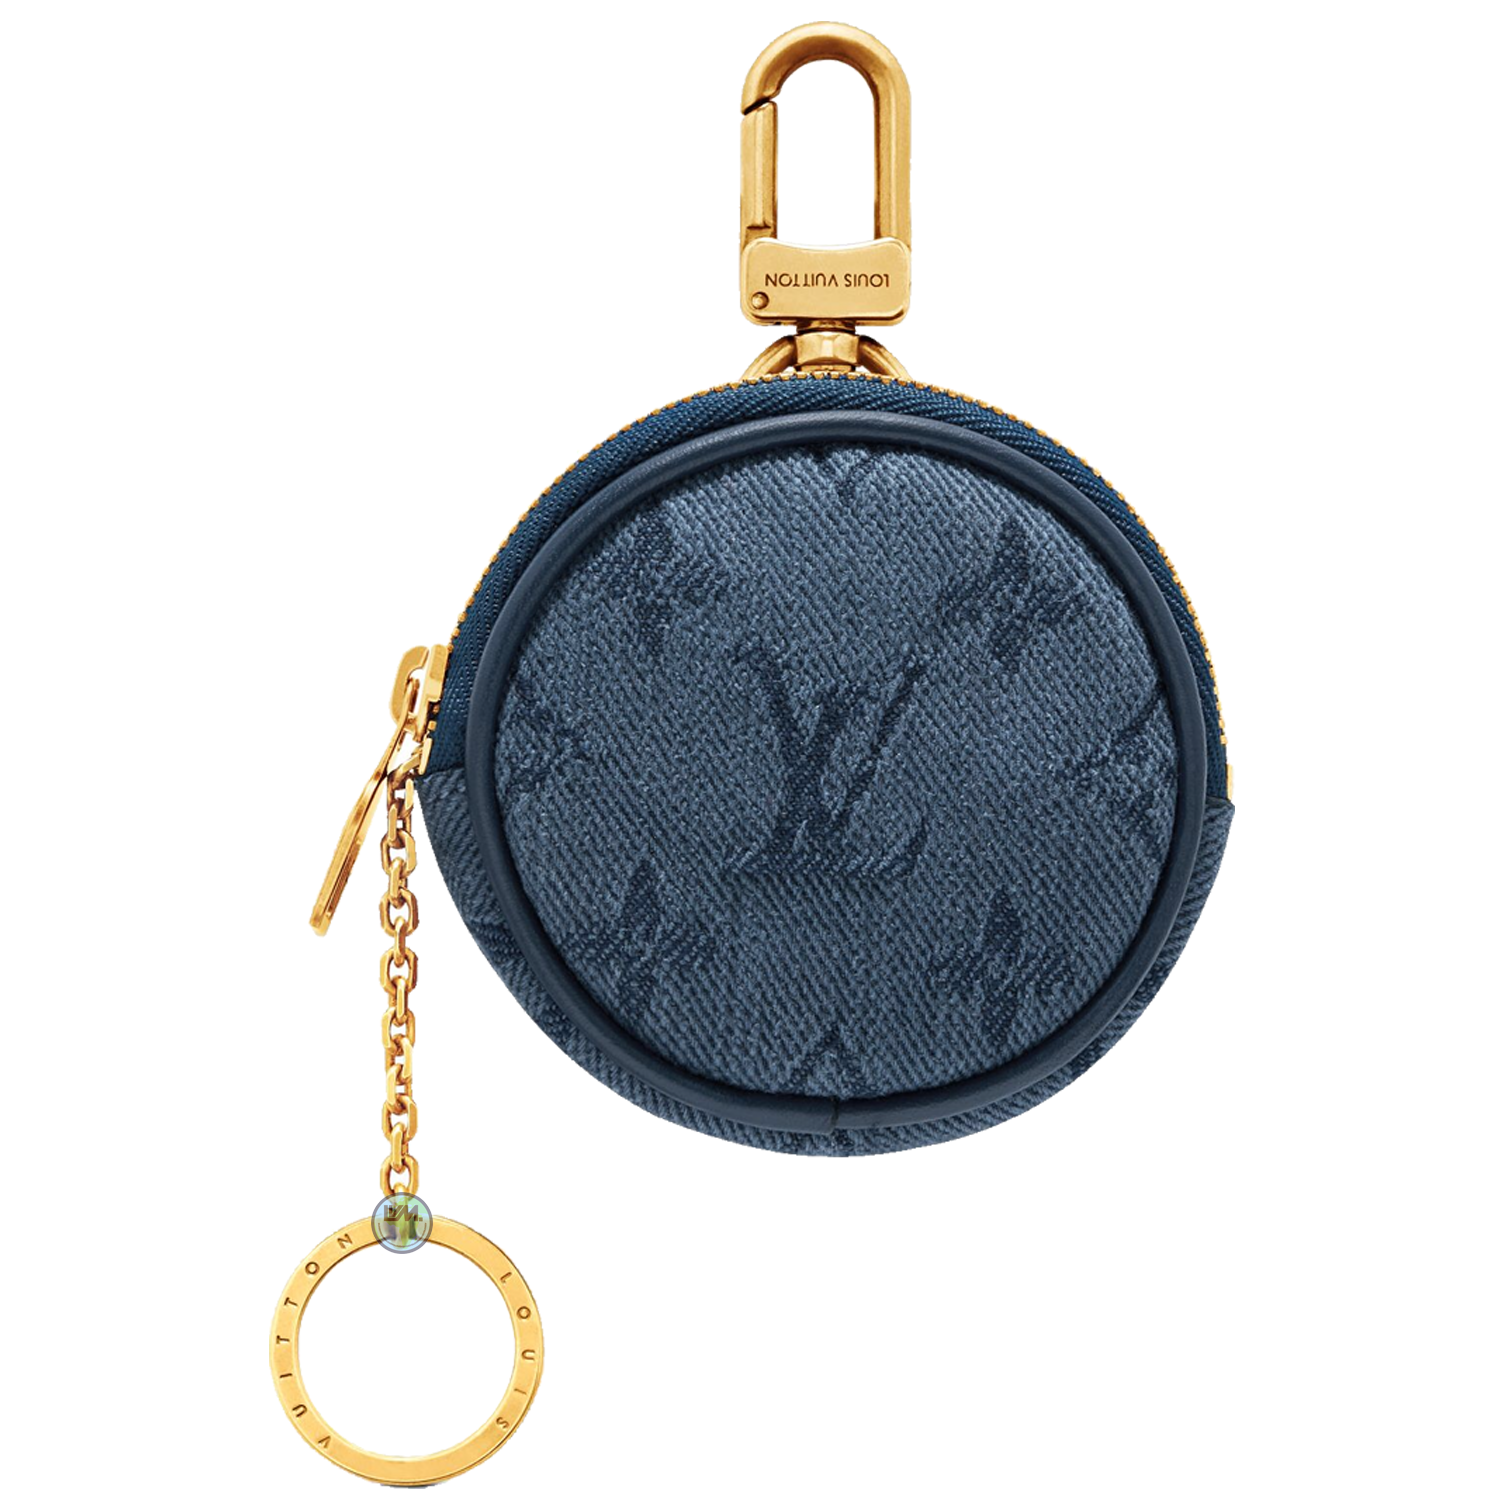 bag CHARM - €450 $M68290MONOGRAM DENIM NAVY